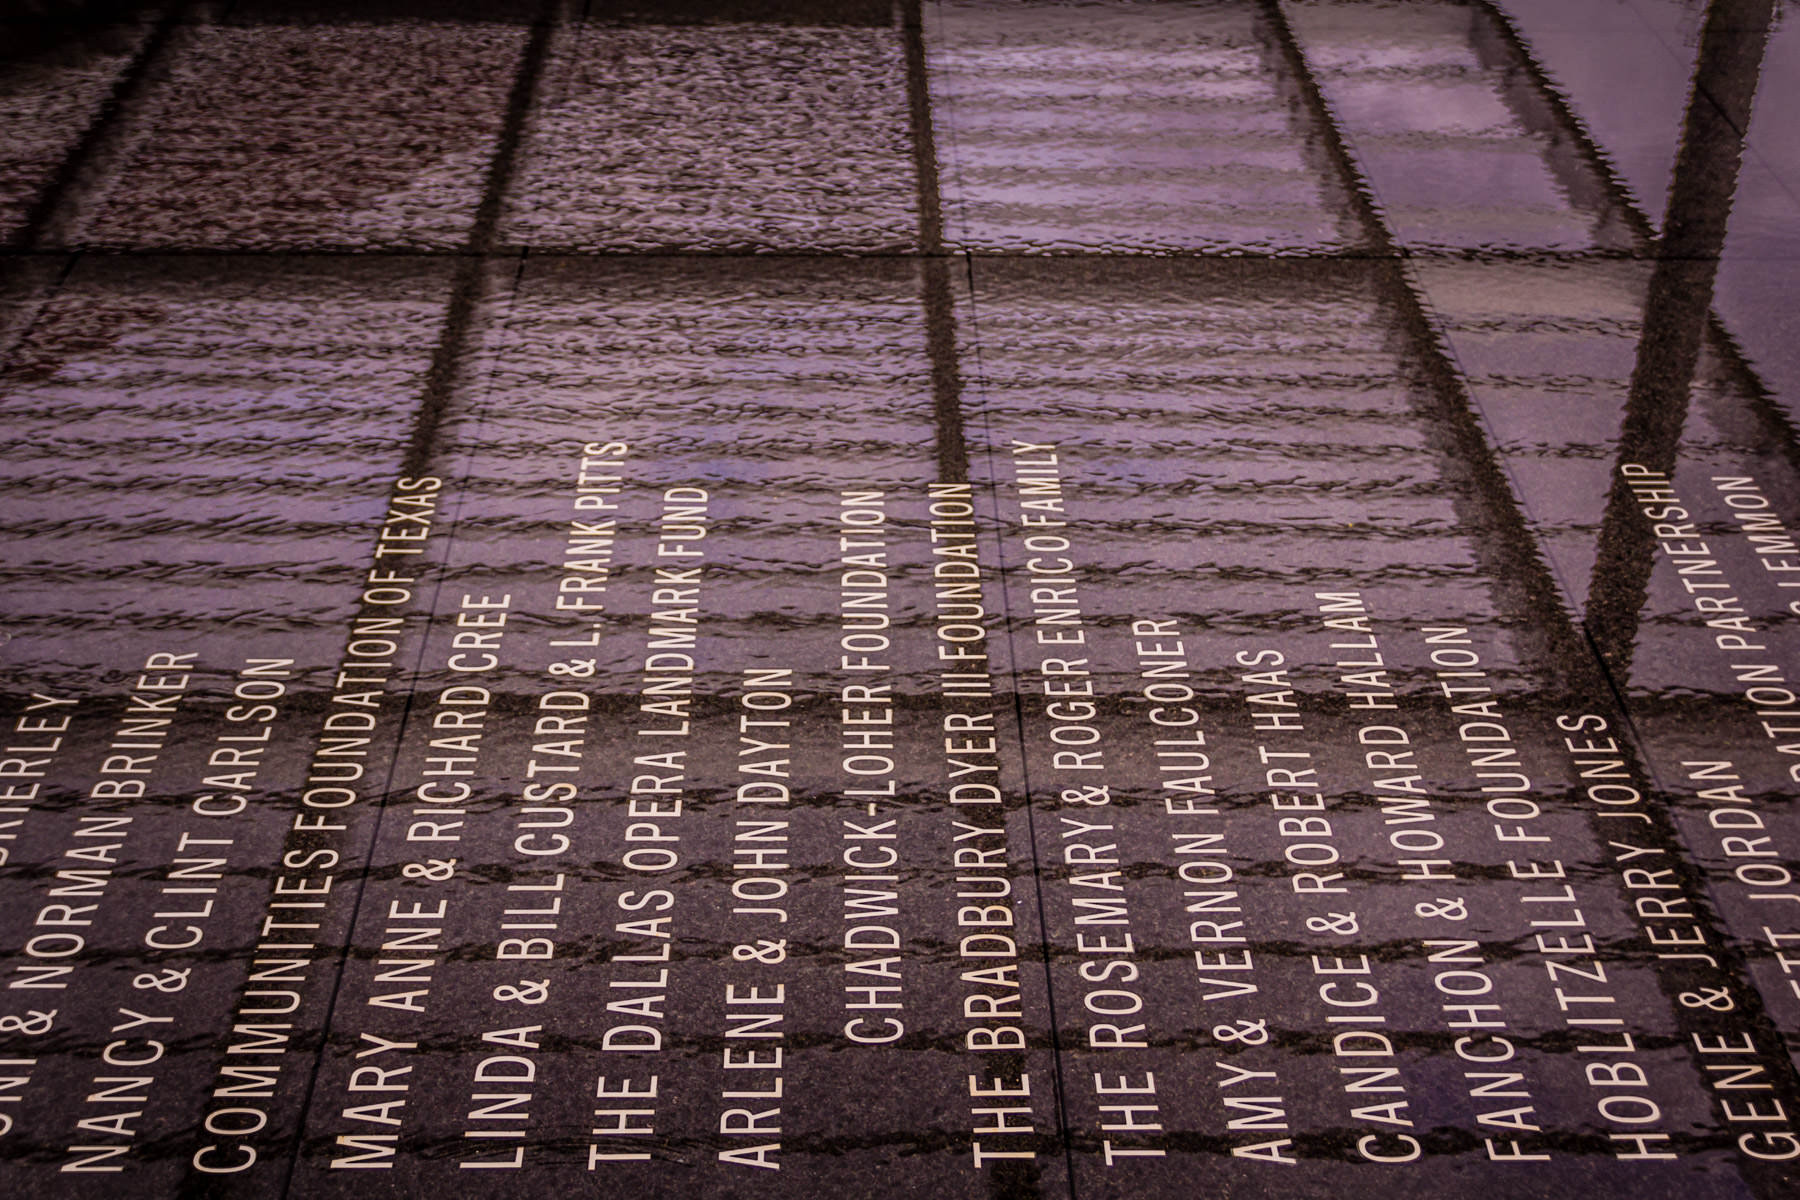 Names of donors carved into the granite bottom of a reflecting pool outside of Dallas' Winspear Opera House.